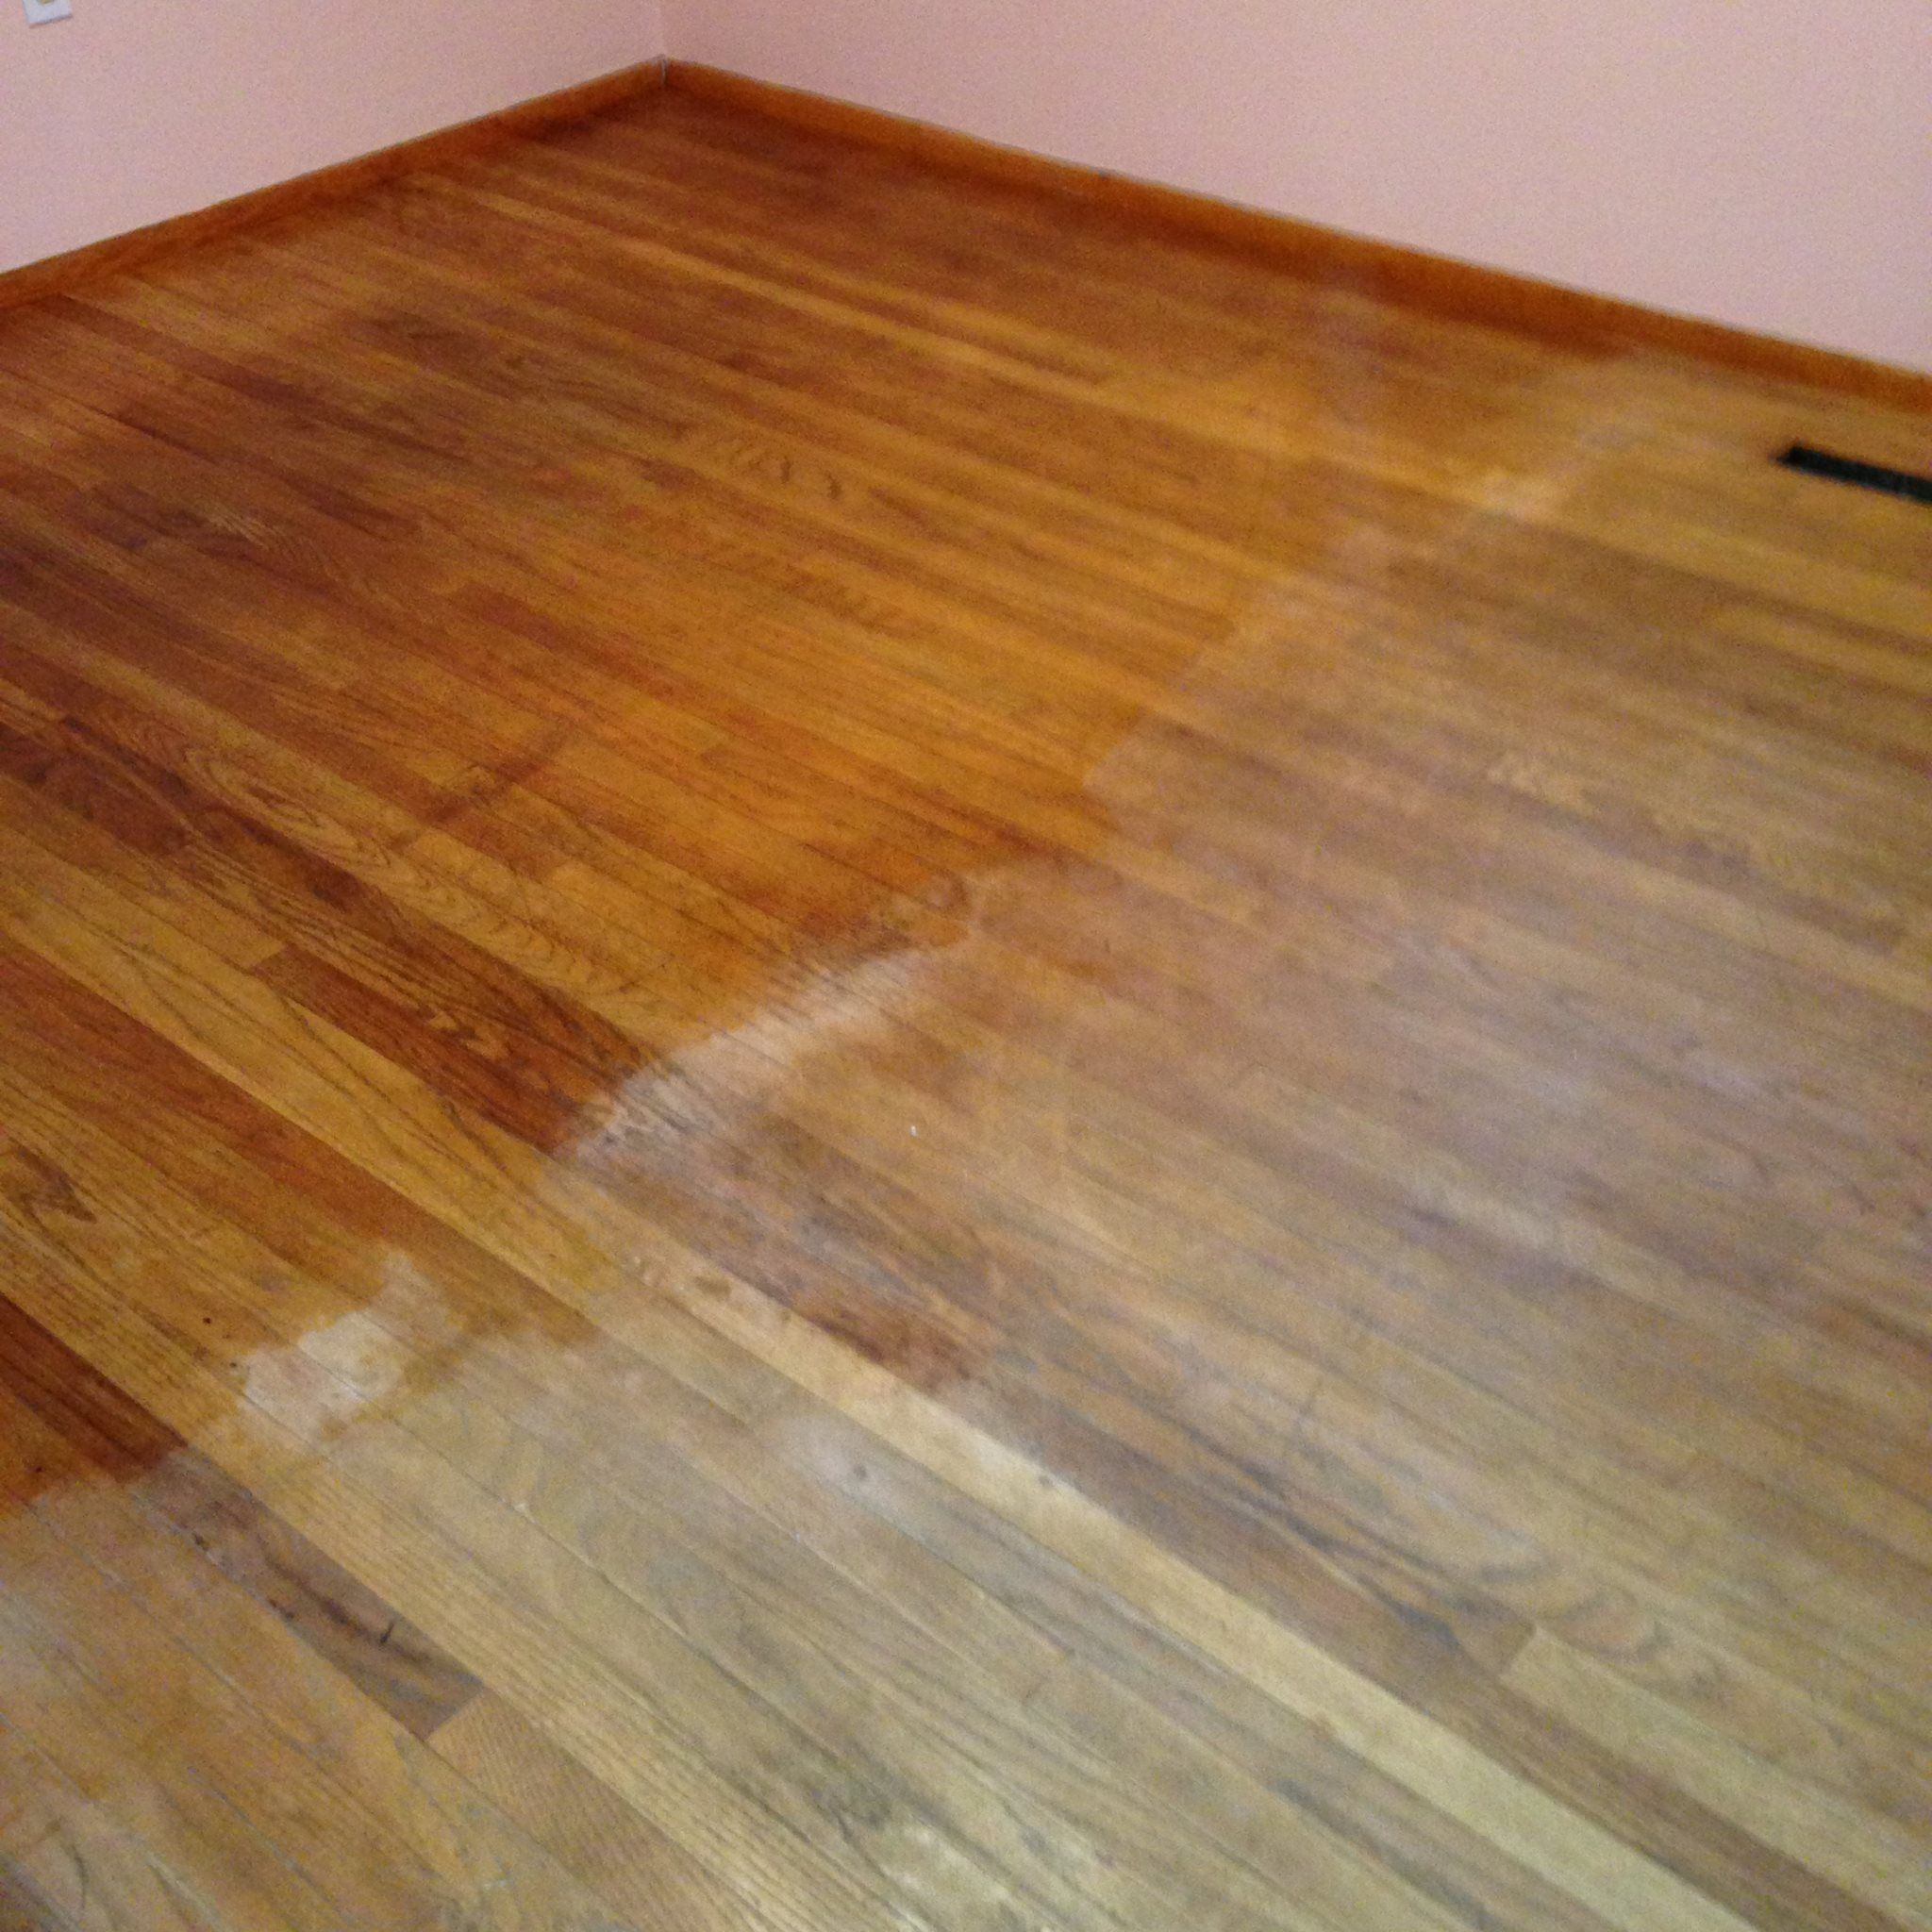 how to get scuffs out of wood floors